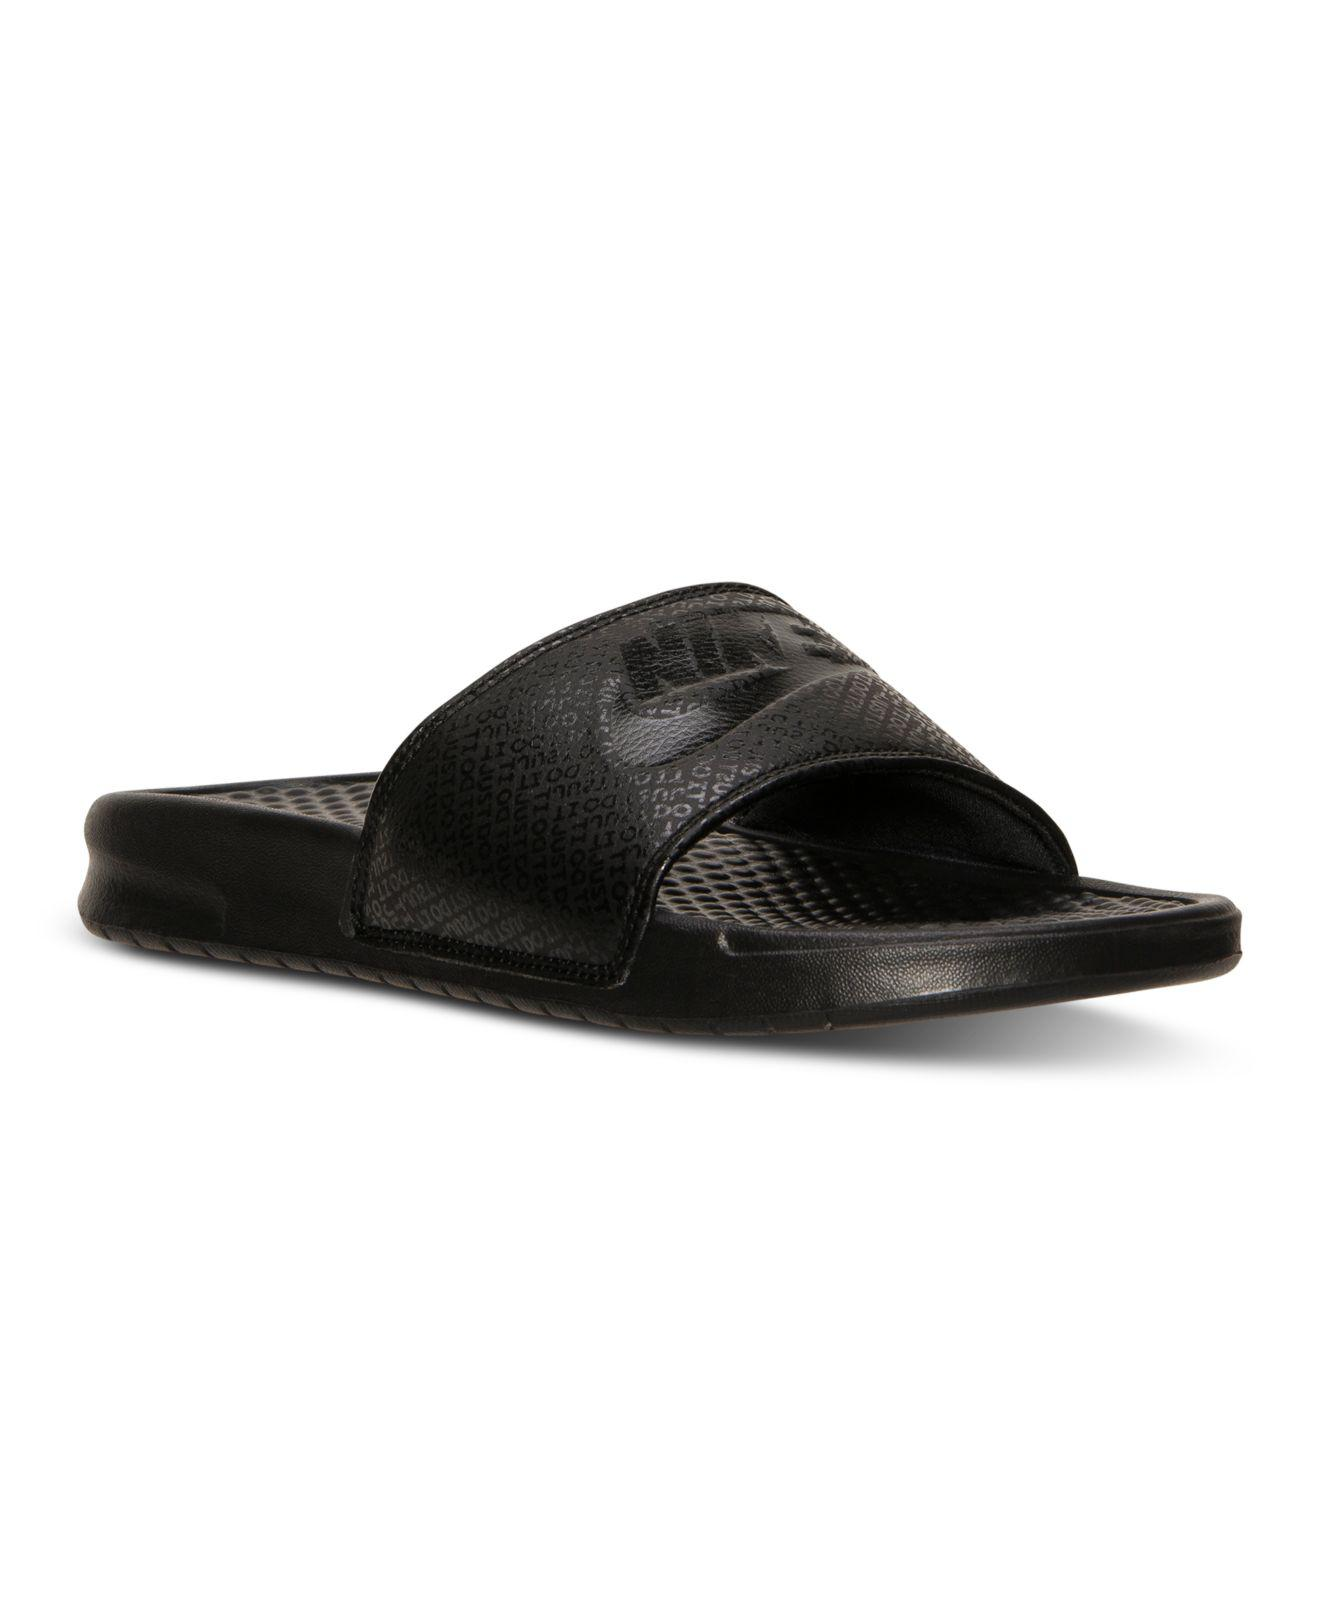 3e756eddd67 Lyst - Nike Men s Benassi Jdi Slide Sandals From Finish Line in ...